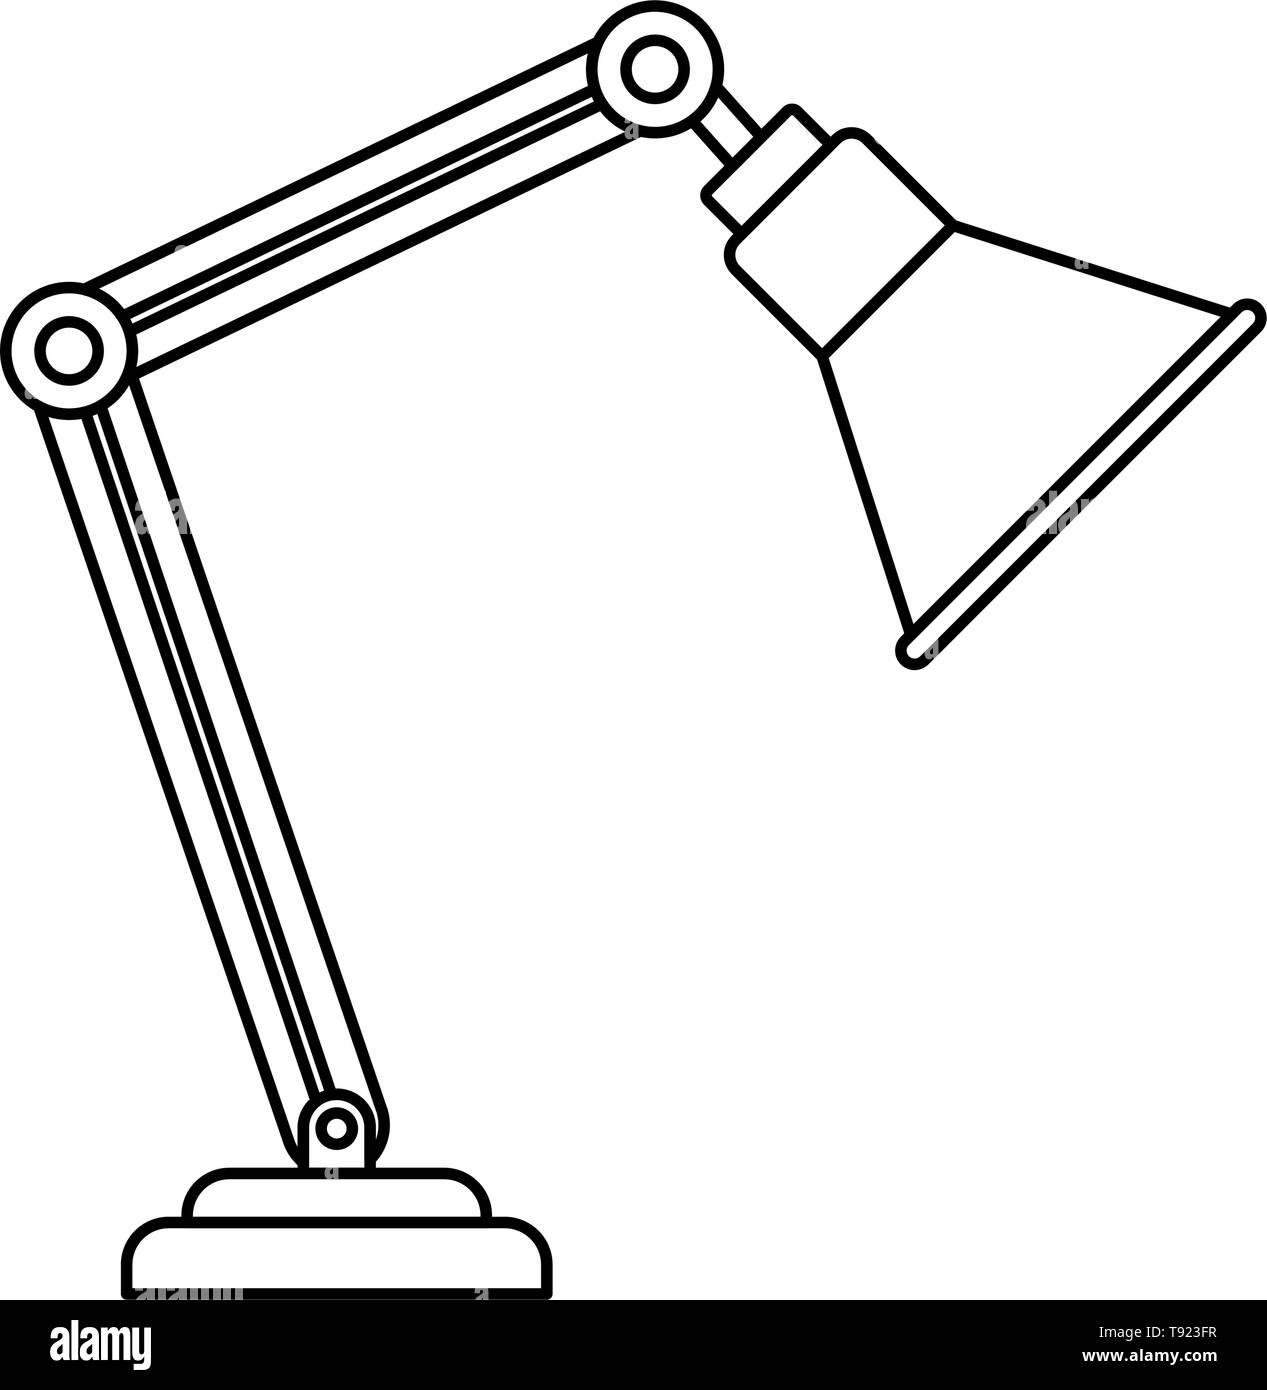 silhouette of office lamp on white background - Stock Image